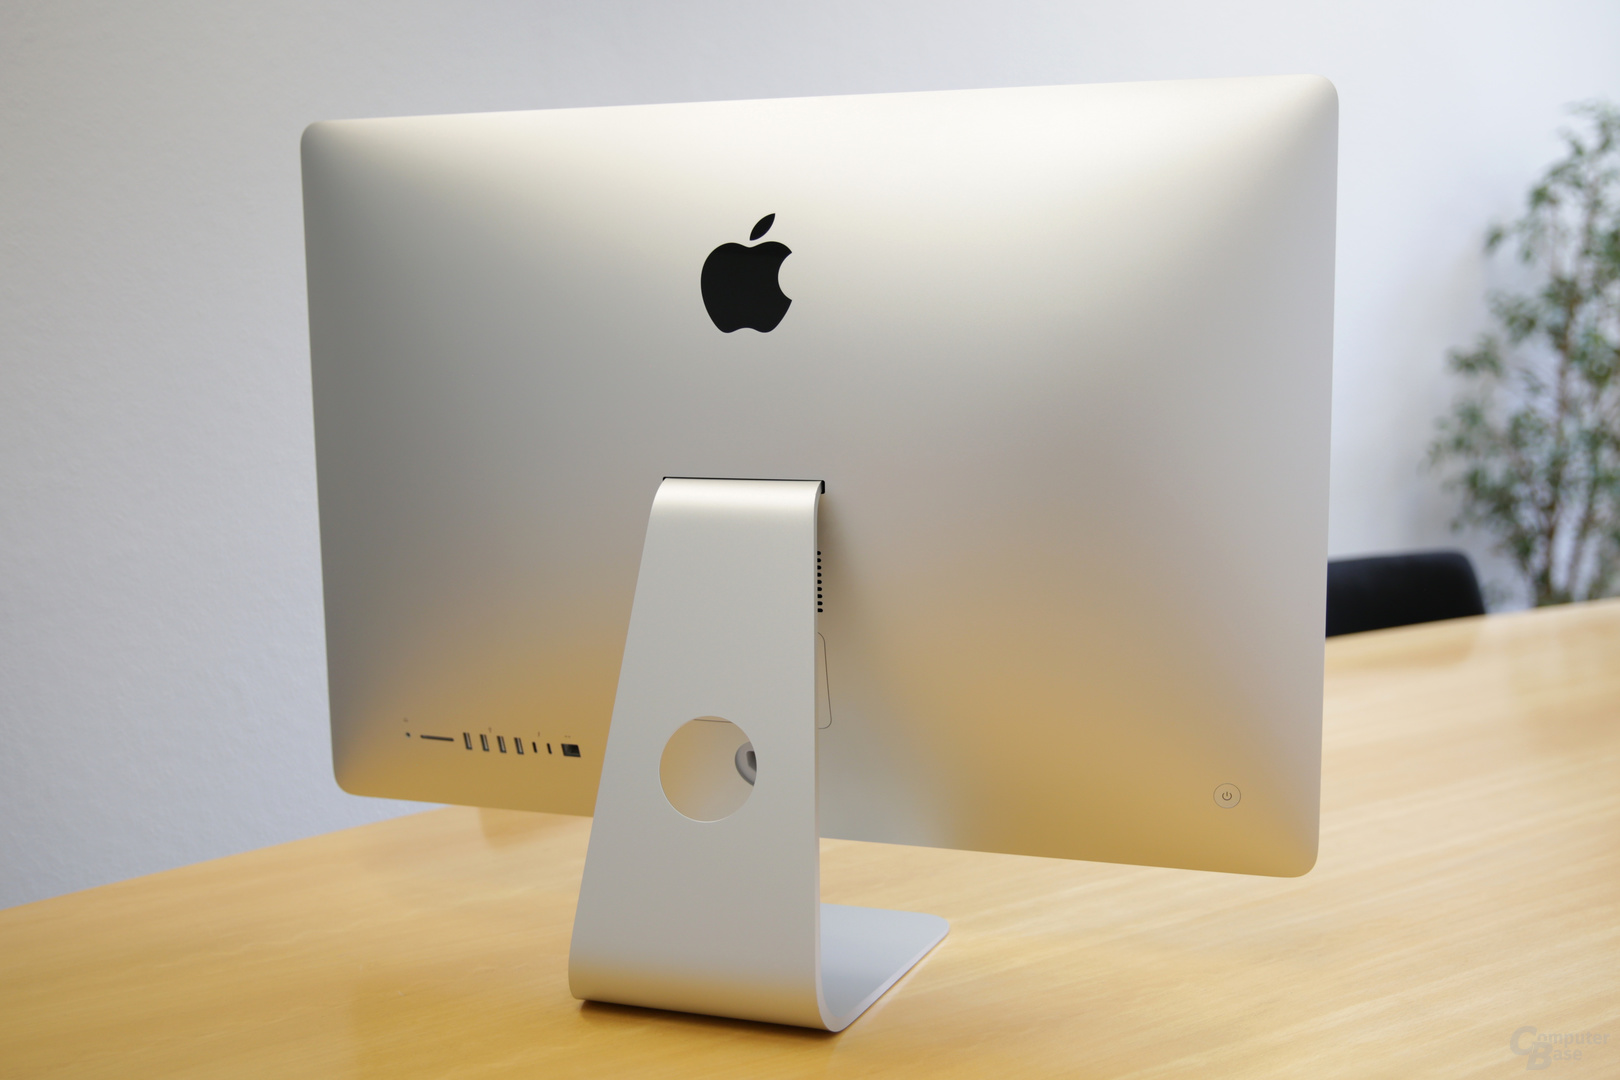 hight resolution of imac in 27 zoll mit poliertem apple logo